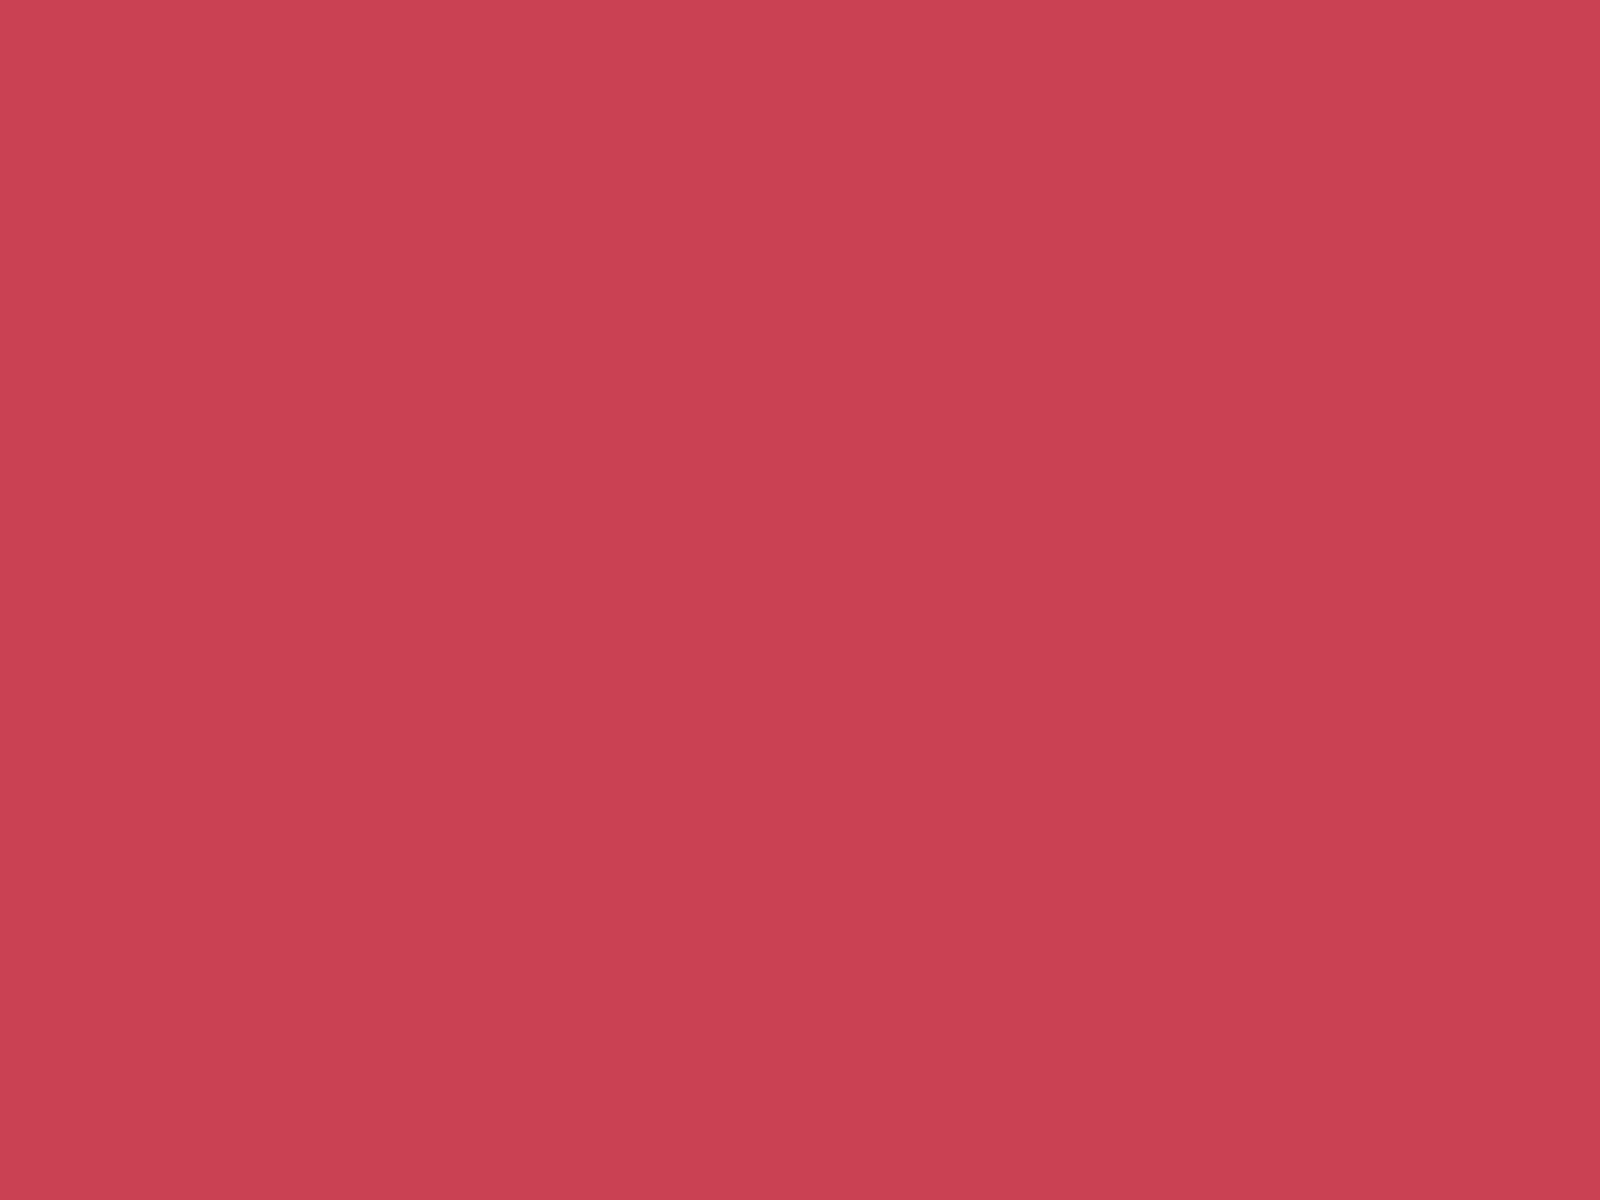 1600x1200 Brick Red Solid Color Background